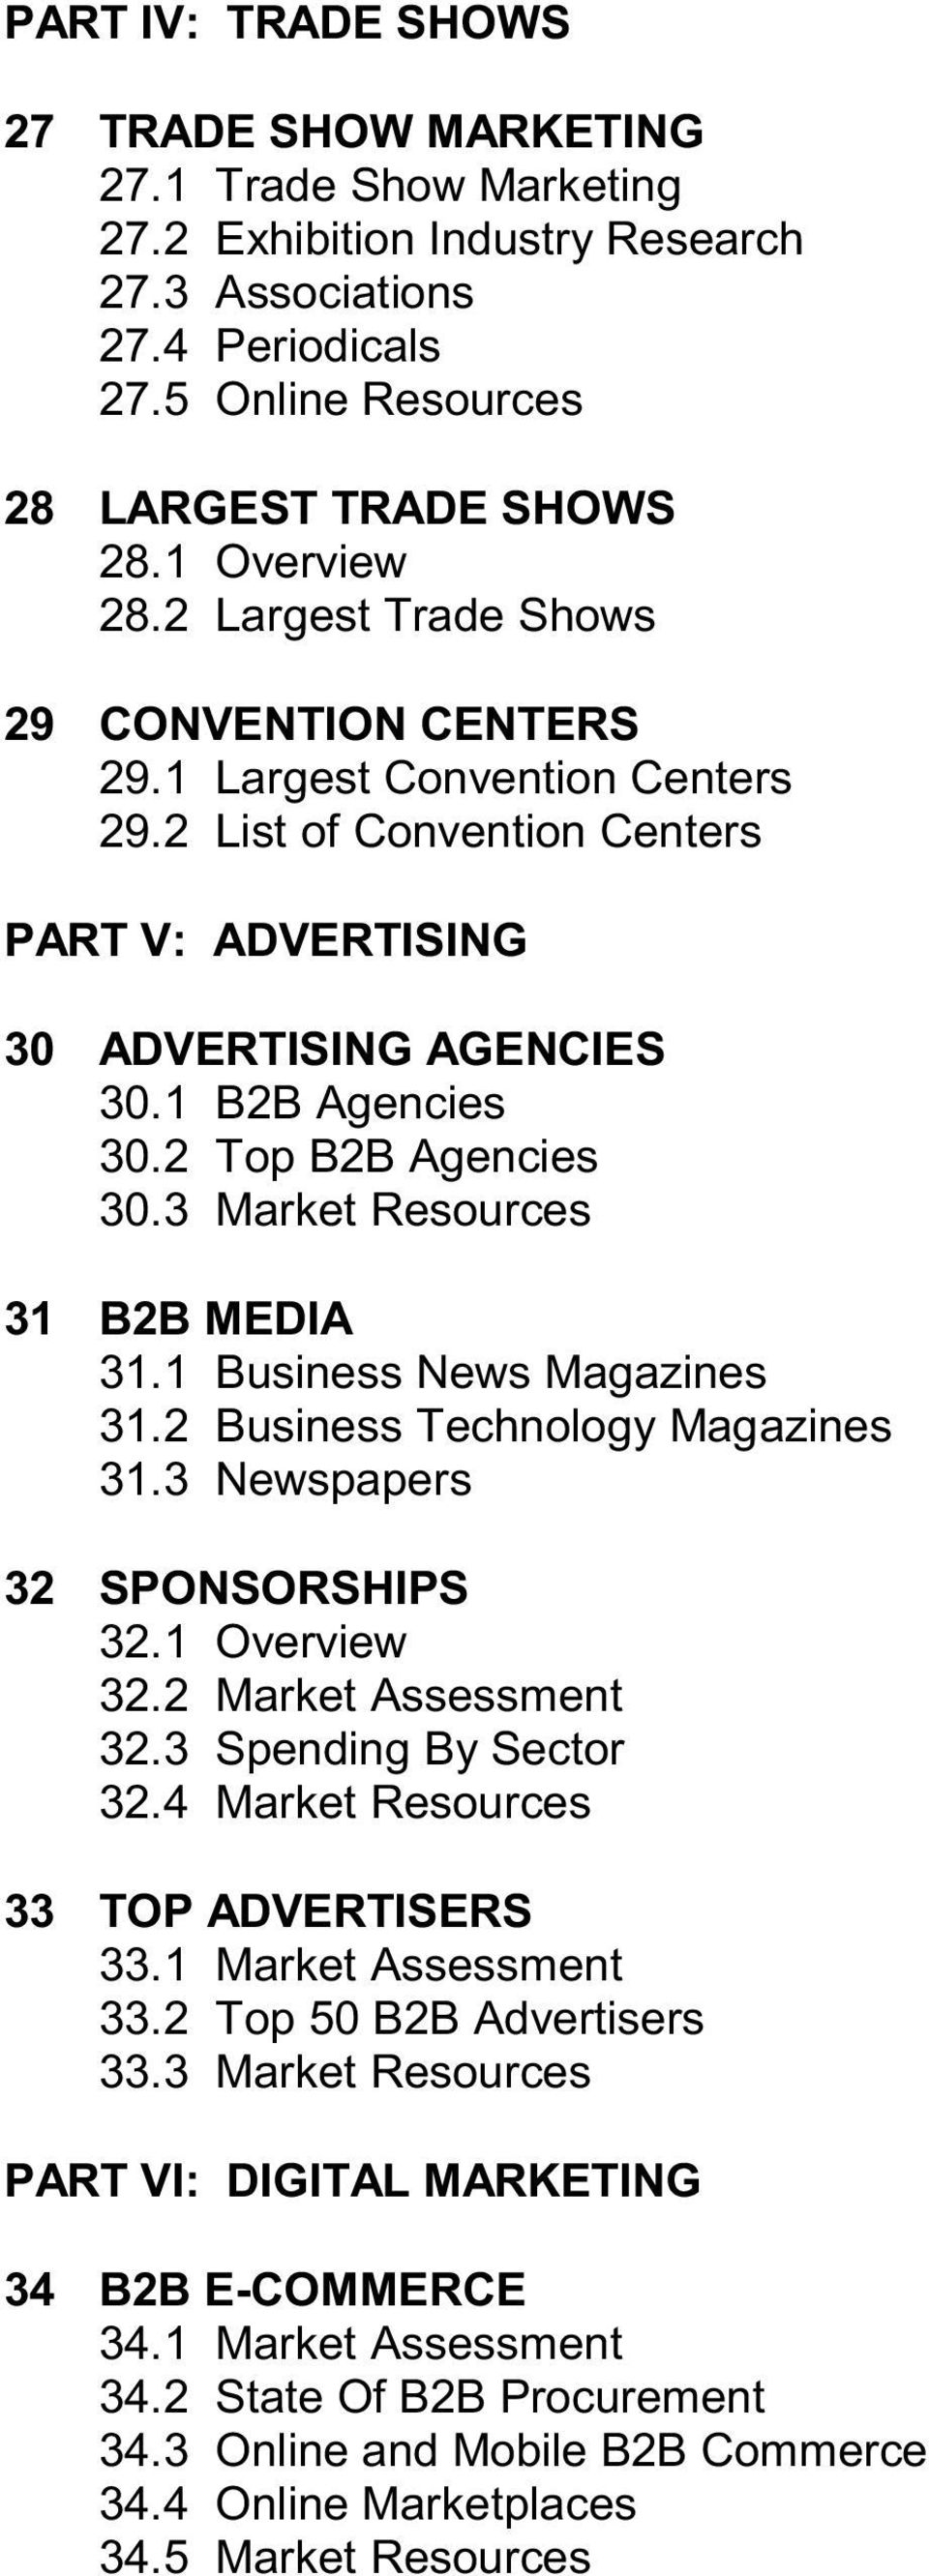 2 Top B2B Agencies 30.3 Market Resources 31 B2B MEDIA 31.1 Business News Magazines 31.2 Business Technology Magazines 31.3 Newspapers 32 SPONSORSHIPS 32.1 Overview 32.2 Market Assessment 32.